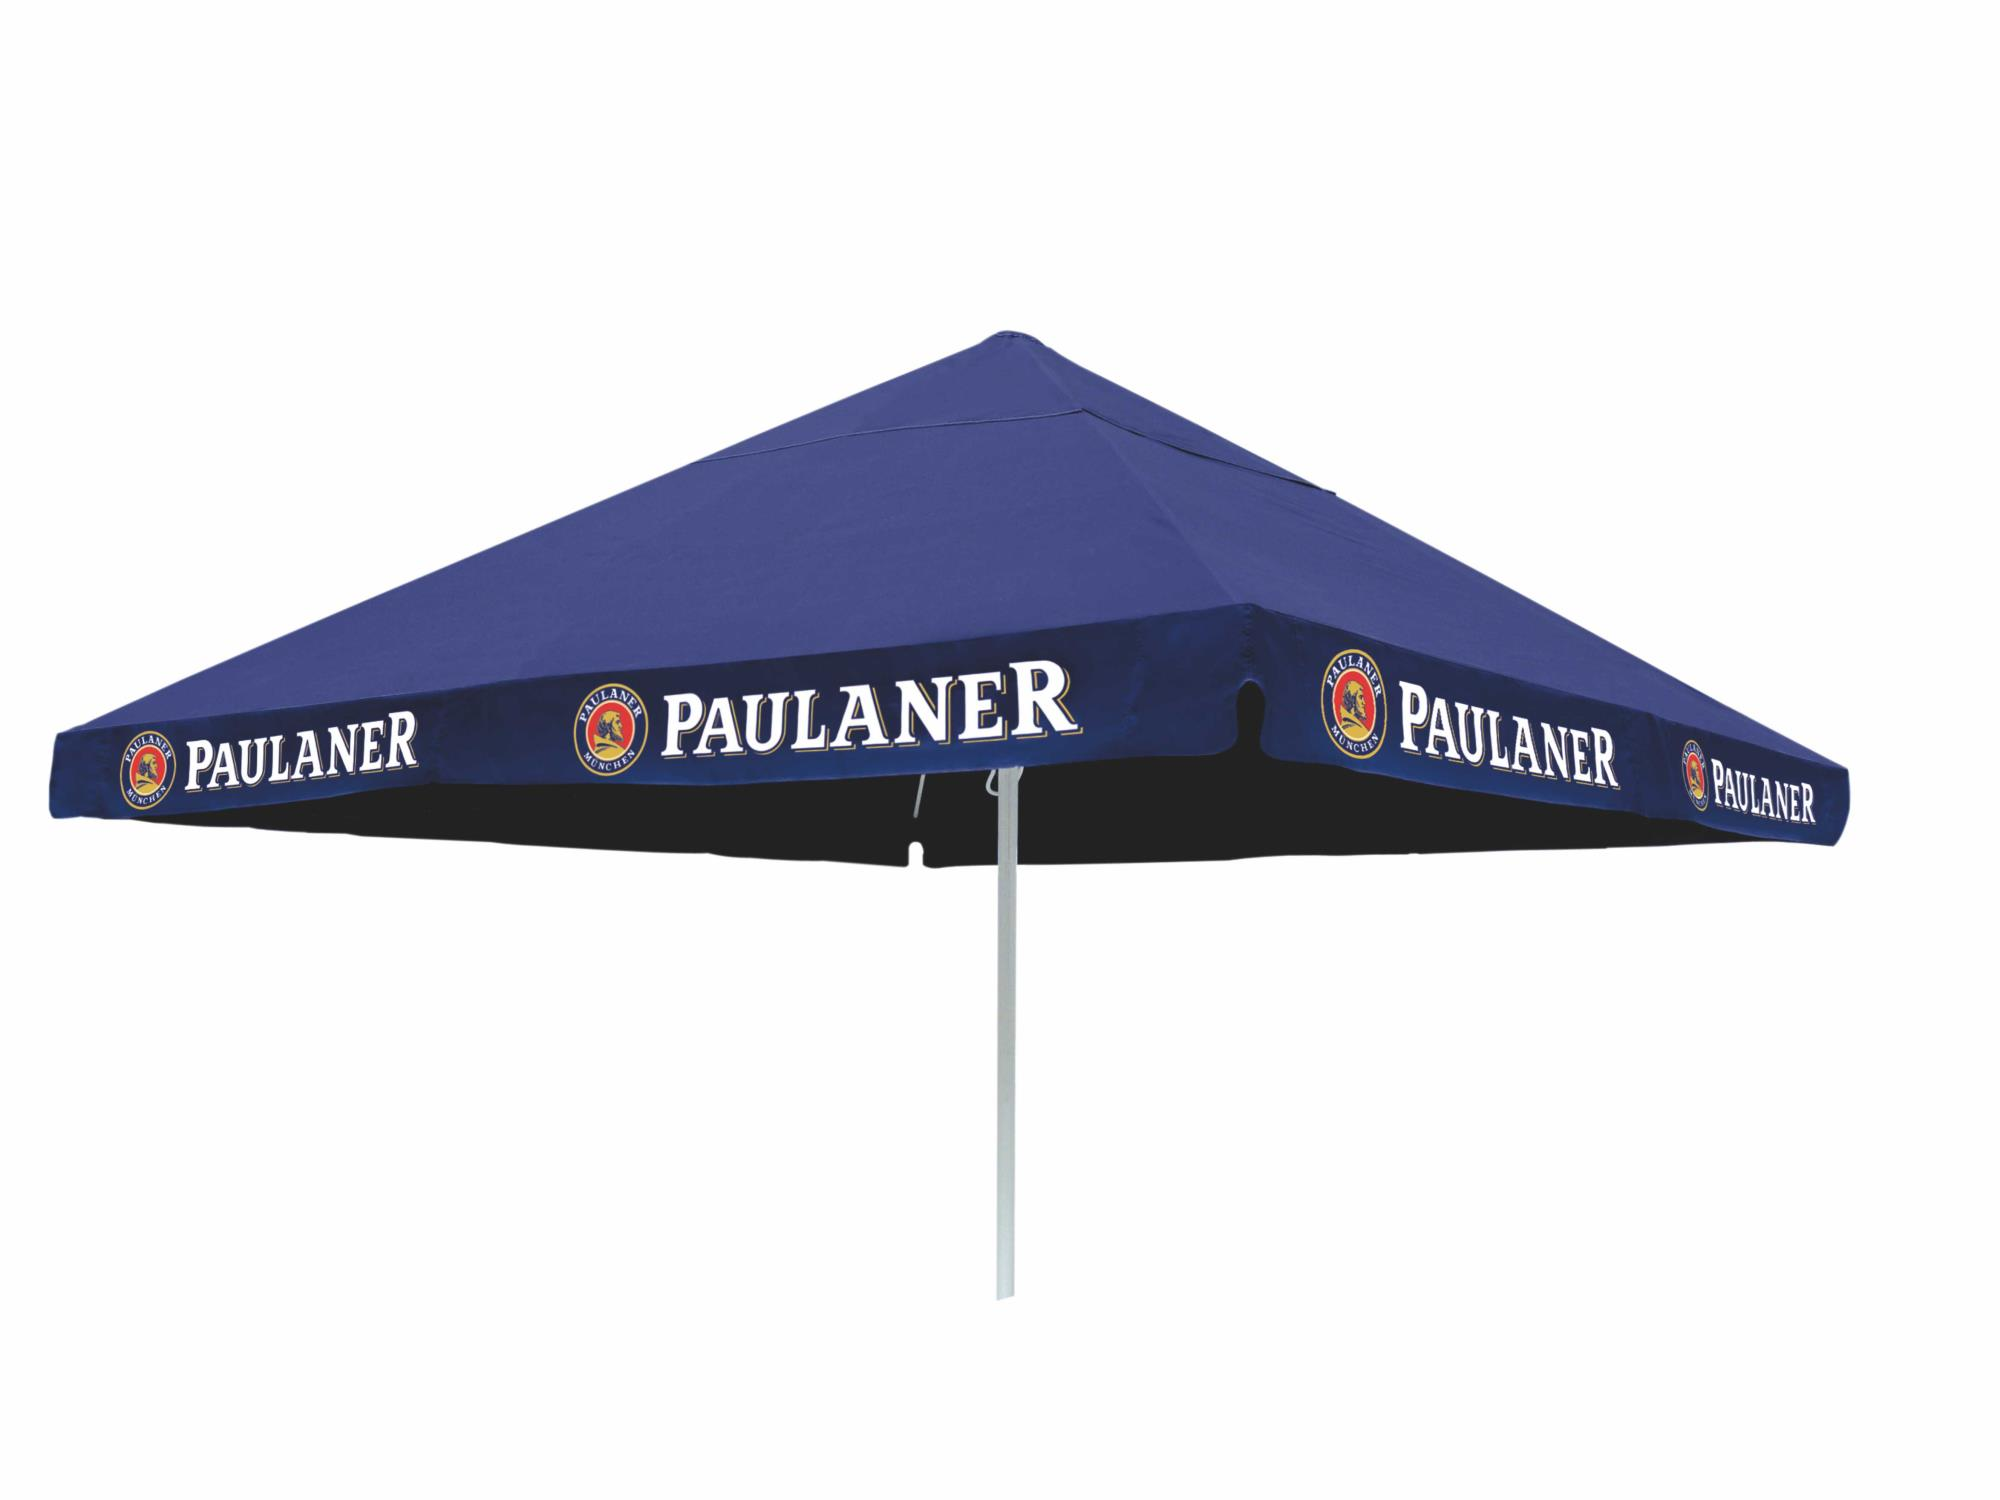 paulaner sonnenschirm 4x4m biergarten paulaner fan shop. Black Bedroom Furniture Sets. Home Design Ideas